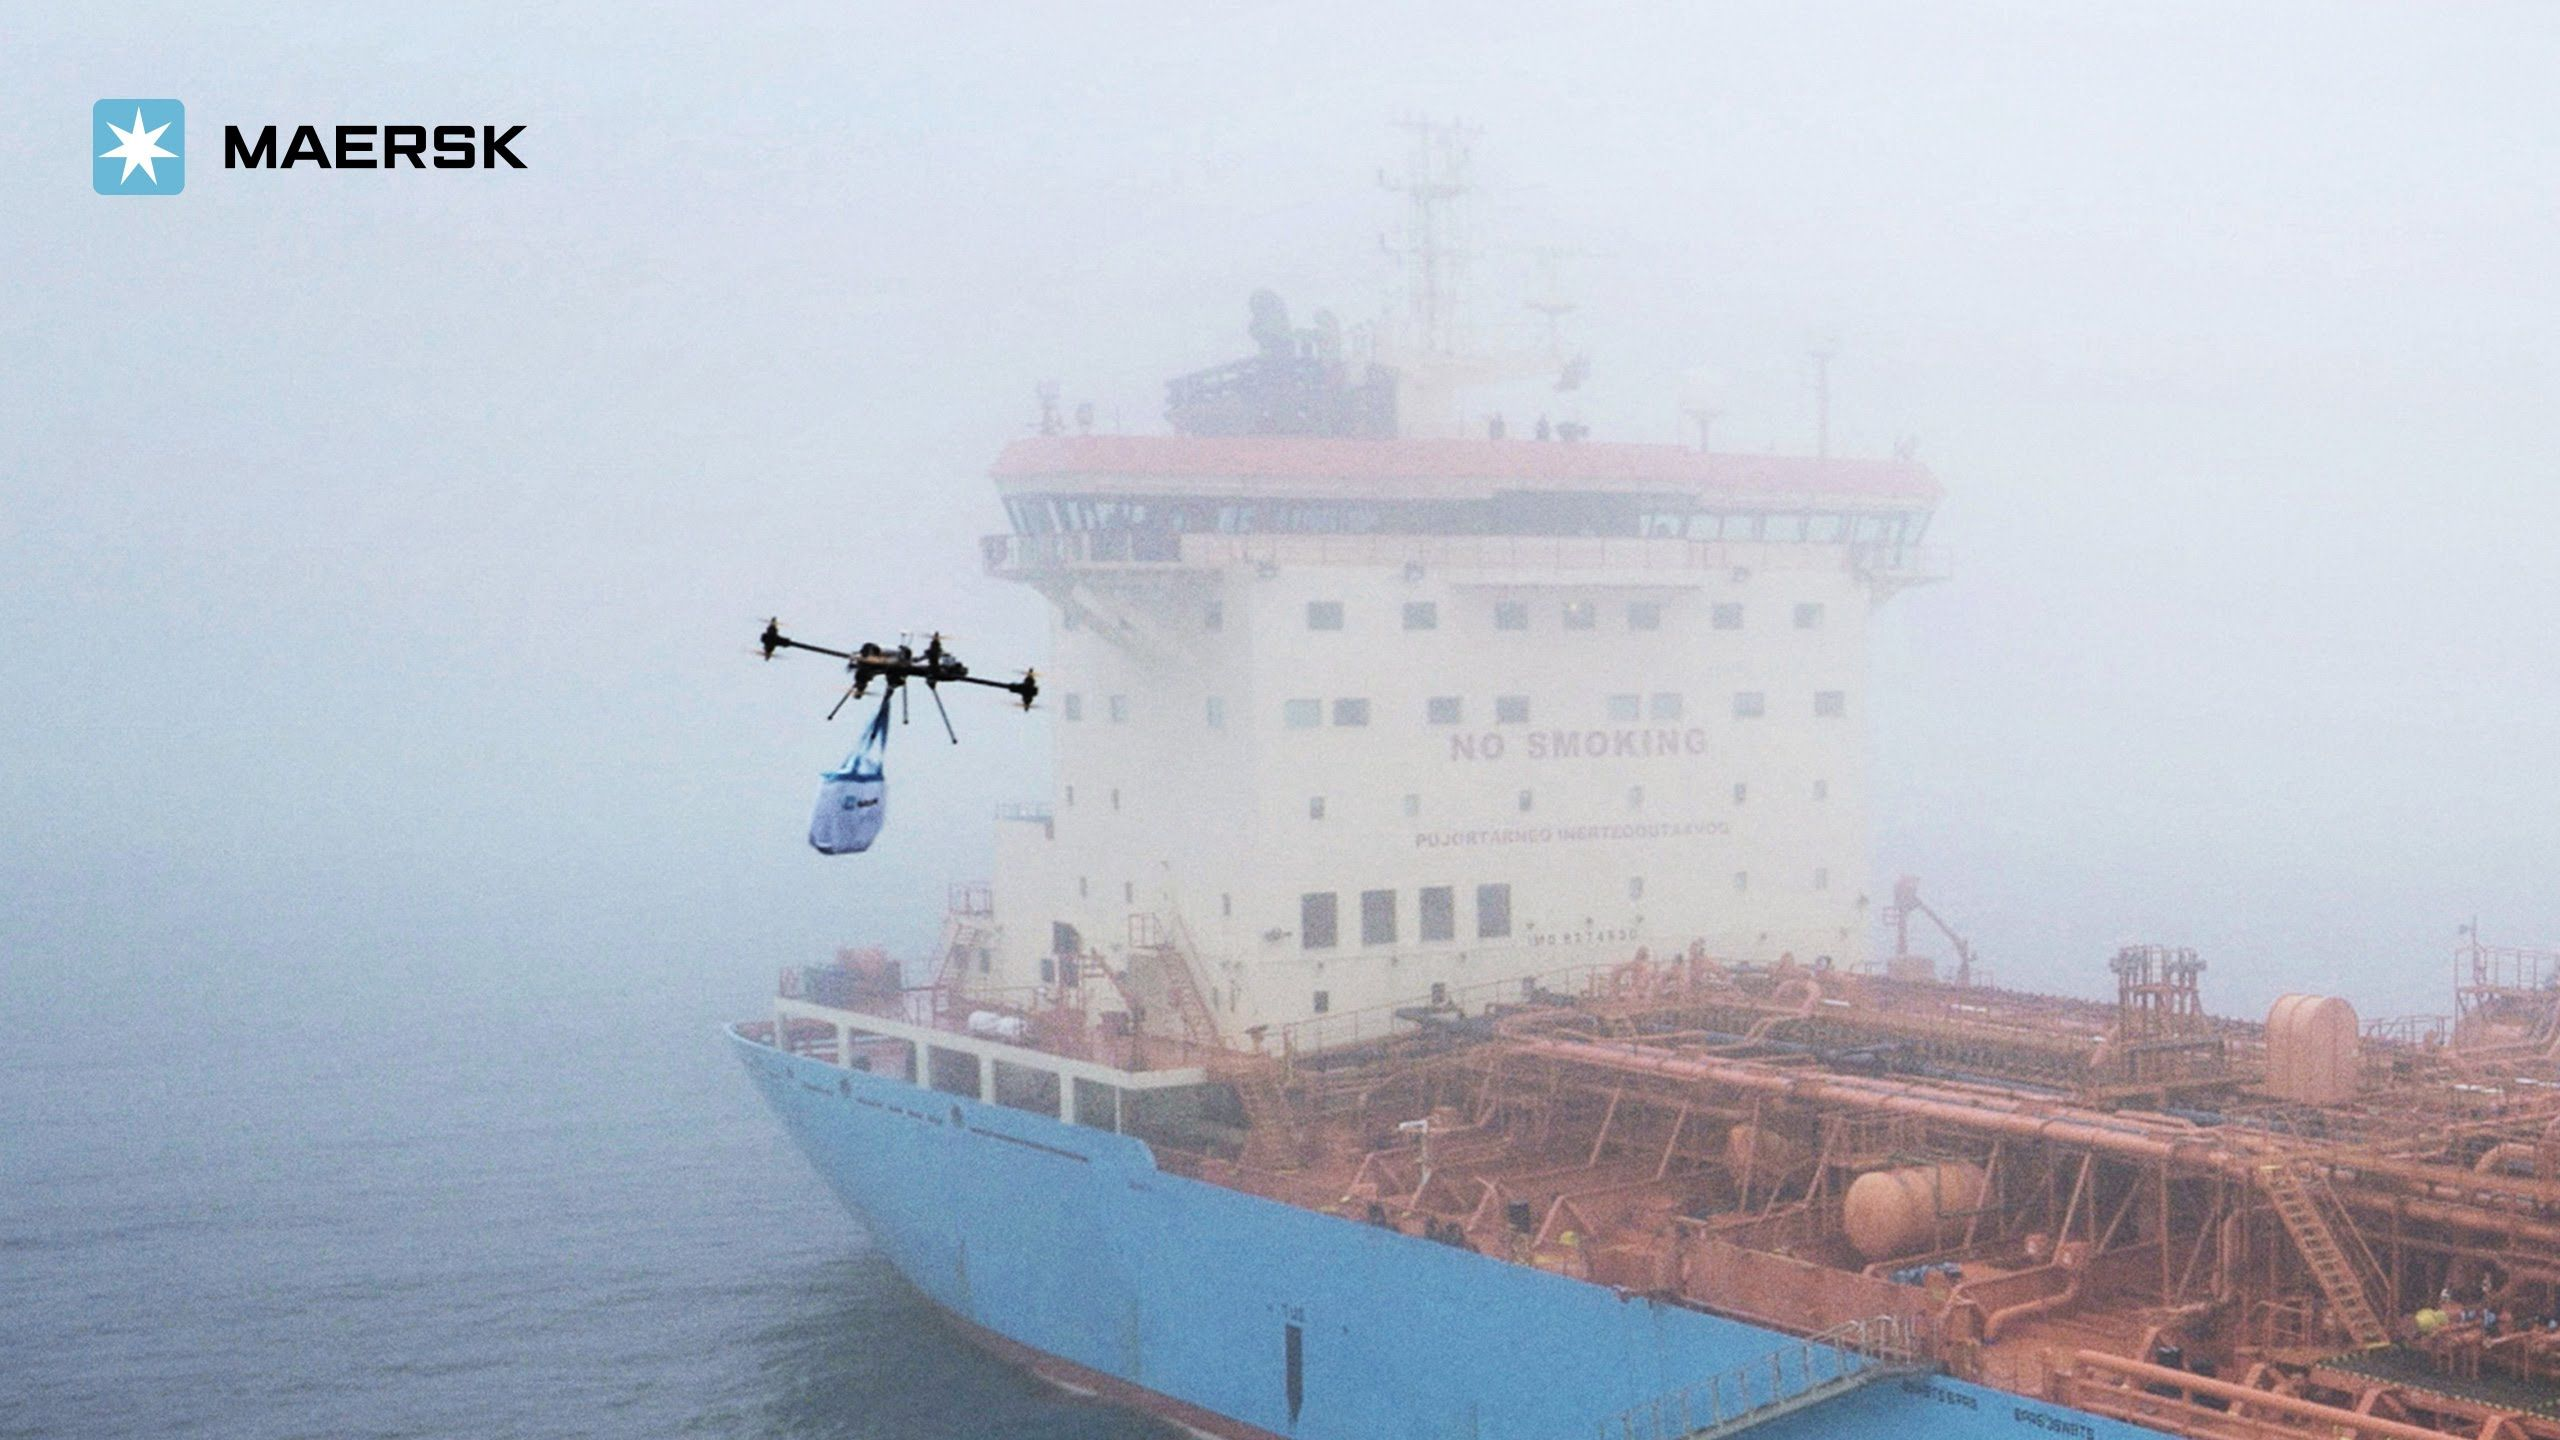 Maersk tankers flown out by drone comercio exterior